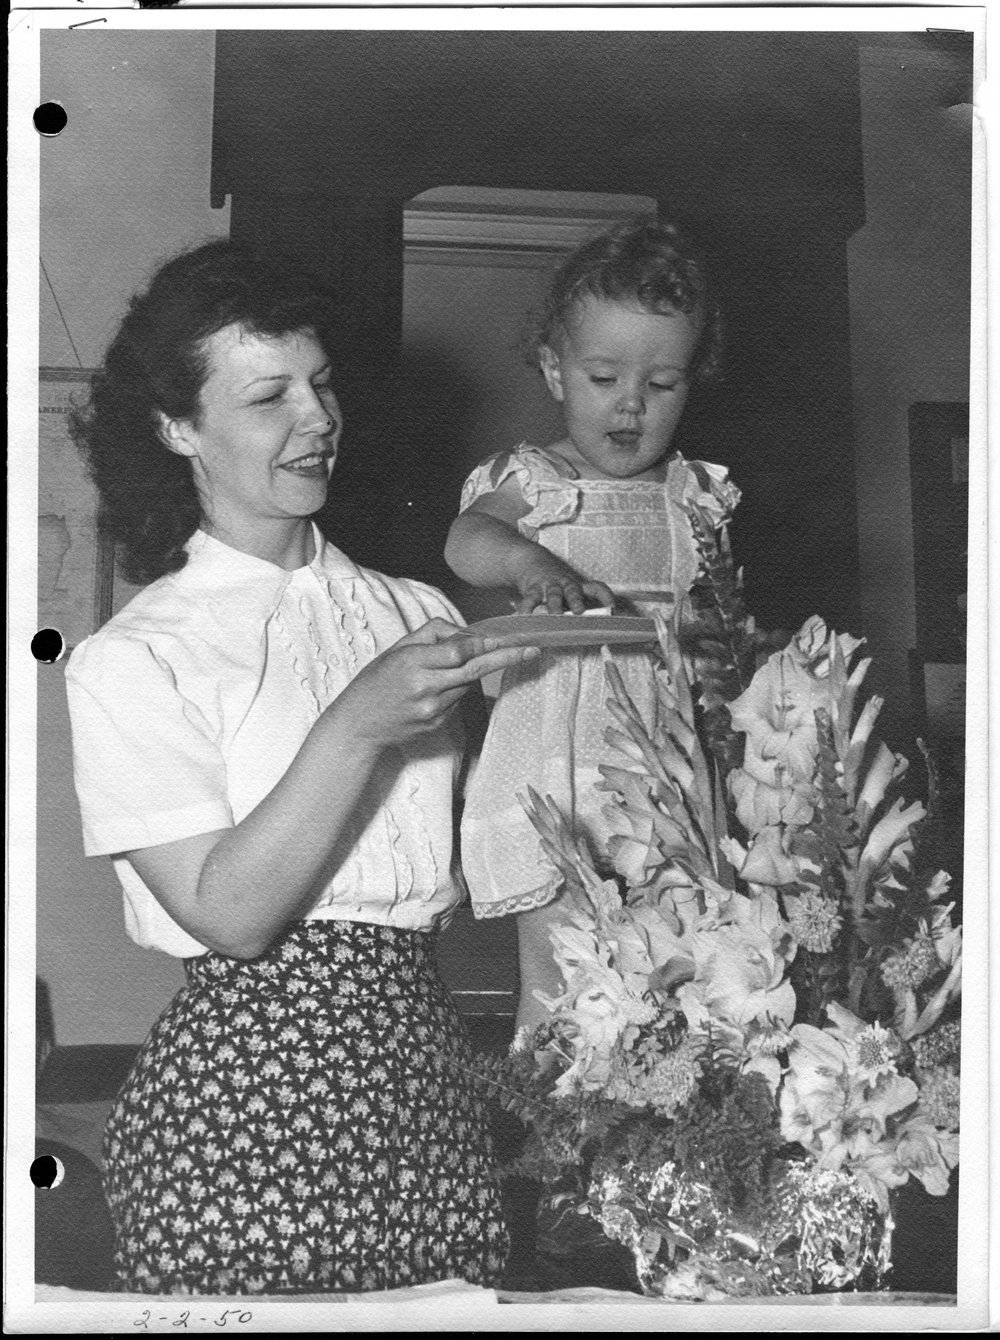 Dr. Karl Menninger - This photograph shows Rosemary on Dr. Karl's birthday.  Her mother Jean is serving her birthday cake.